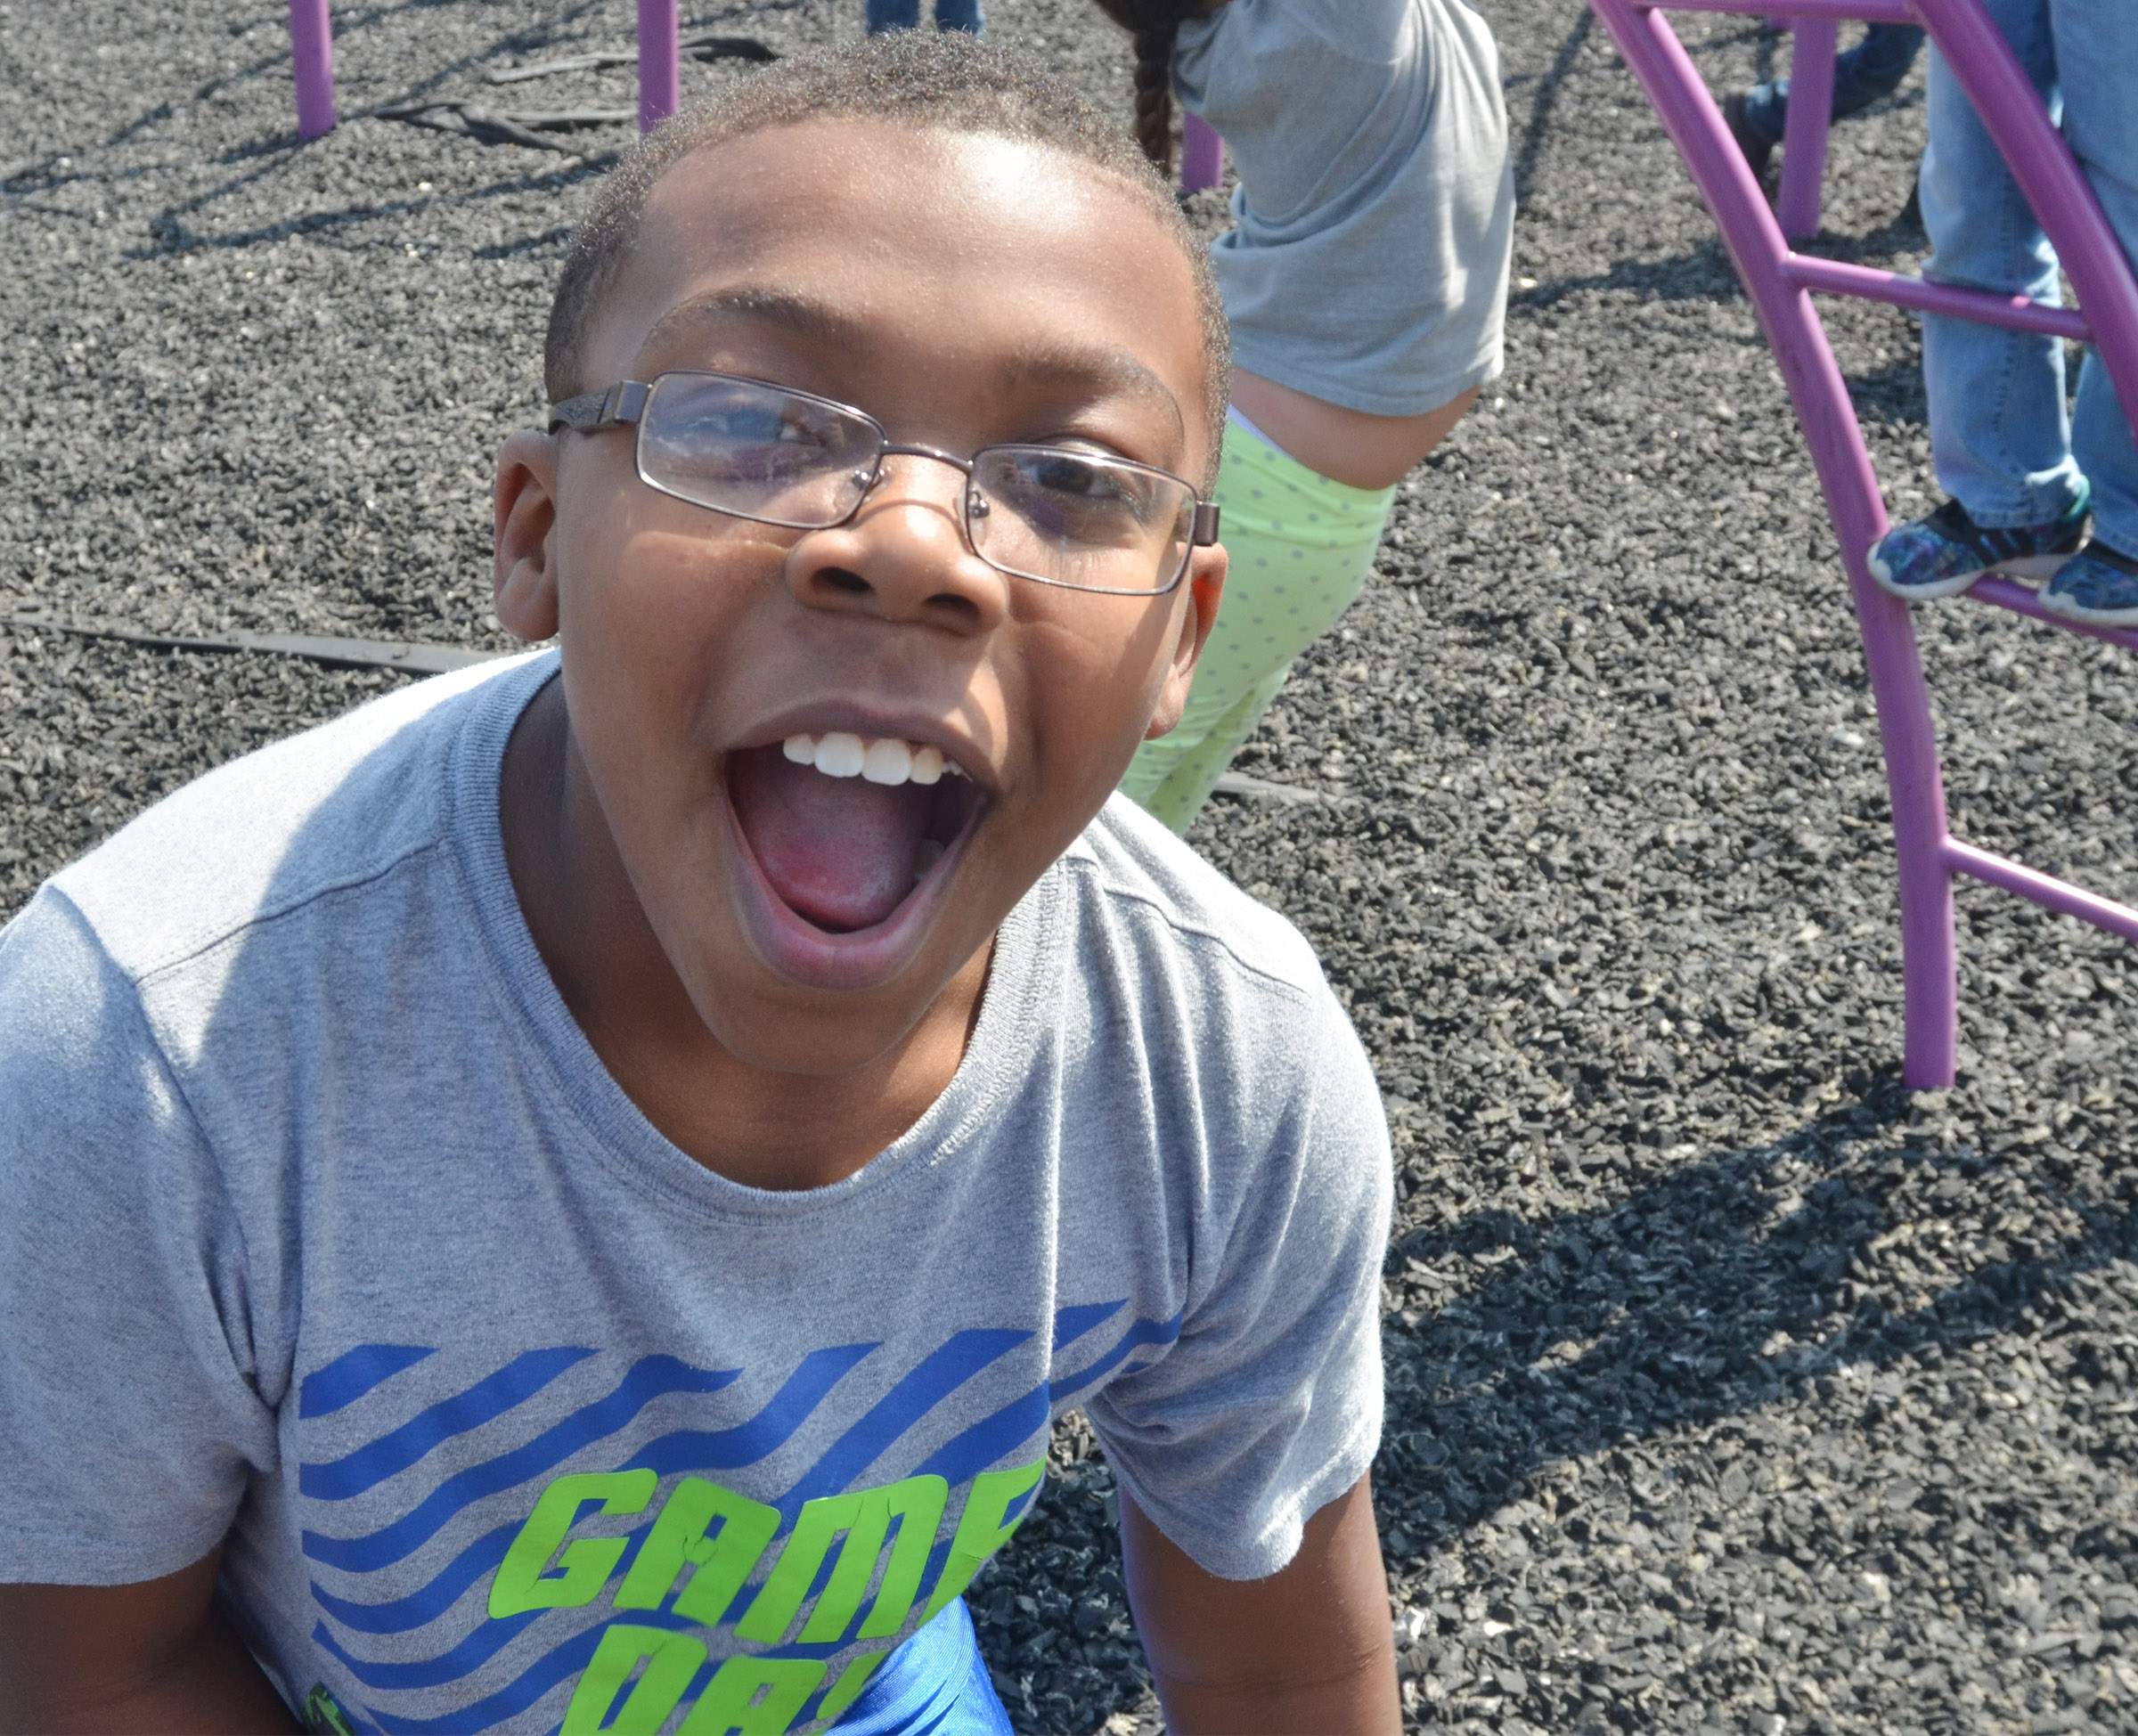 CES third-grader Austin Sloan laughs as he runs around the playground.